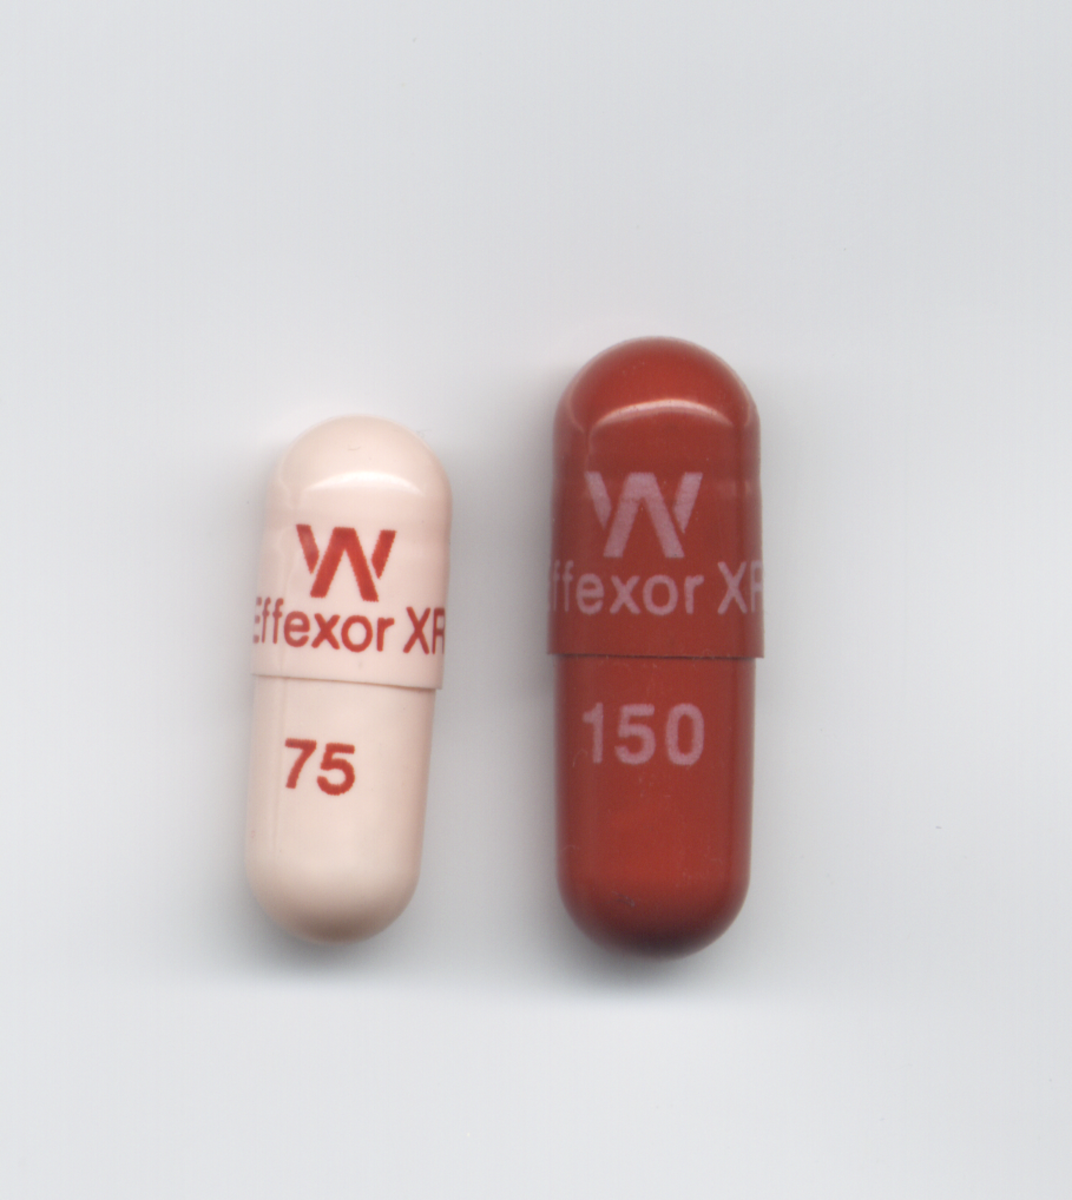 Effexor Withdrawal - Symptoms & Advice